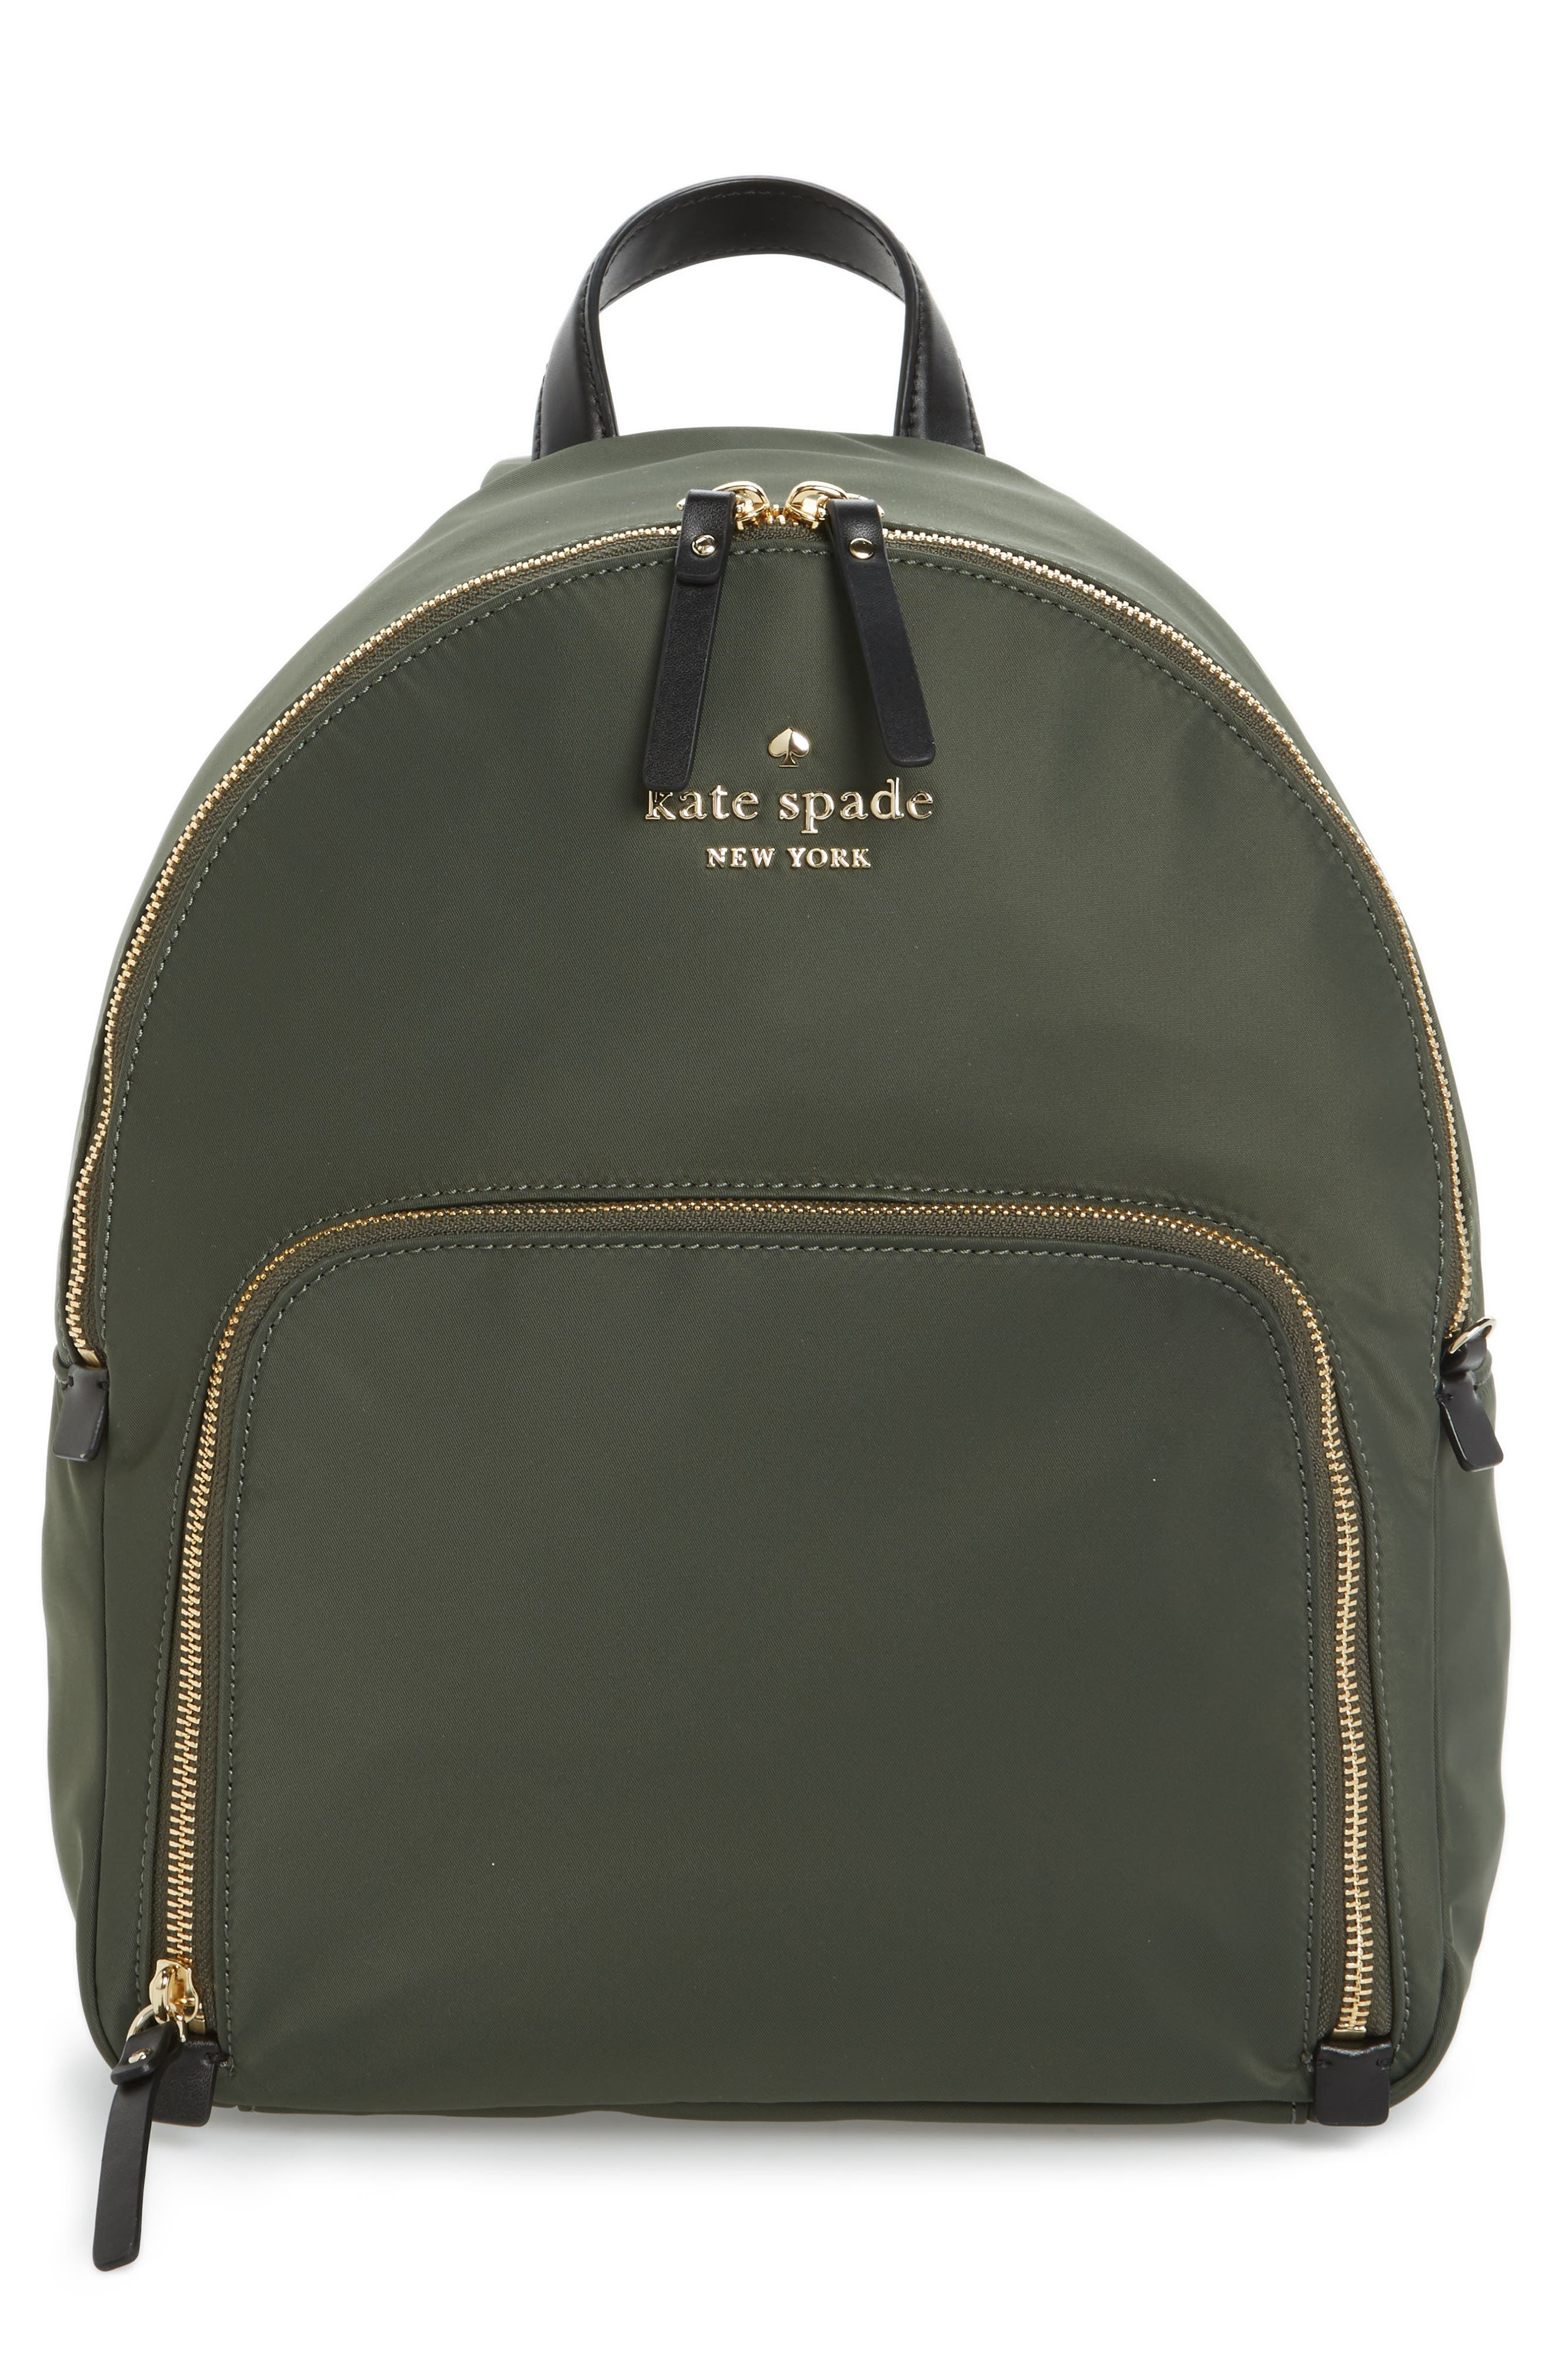 watson lane - hartley nylon backpack,                         Main,                         color, 316